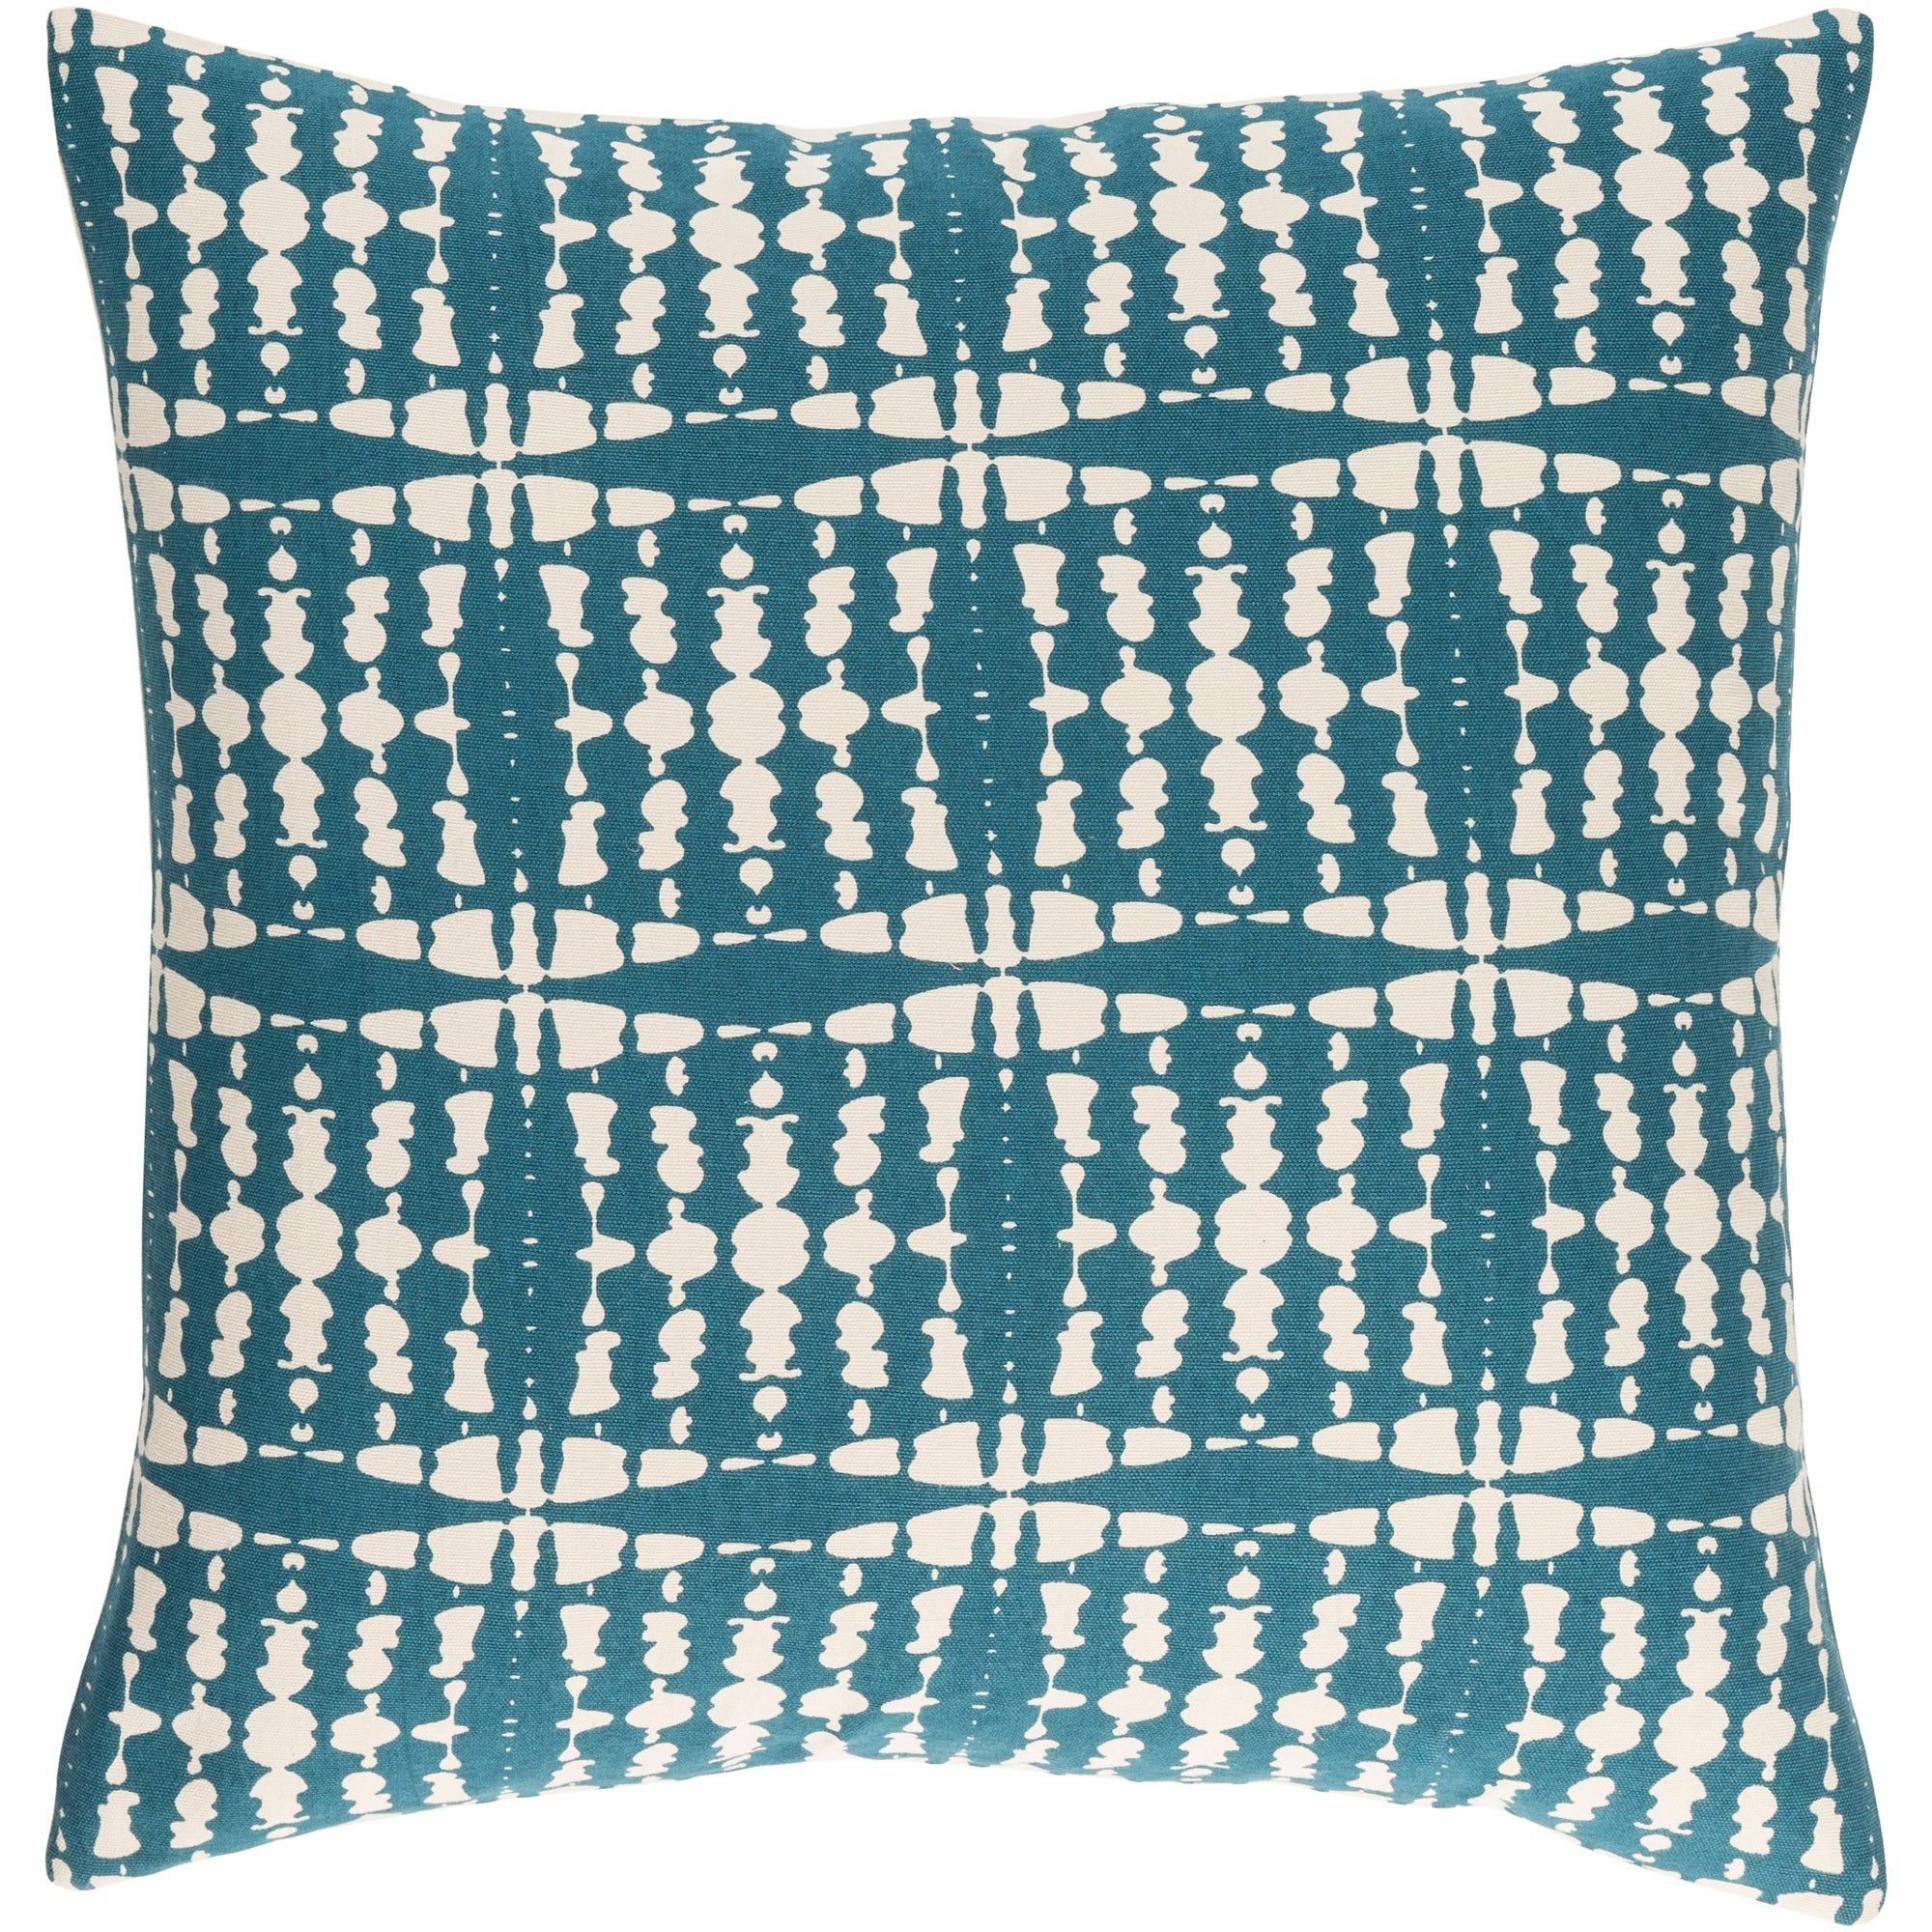 Picture of: Decorative Staveley Teal Blue 22 Inch Throw Pillow Cover Overstock 23143737